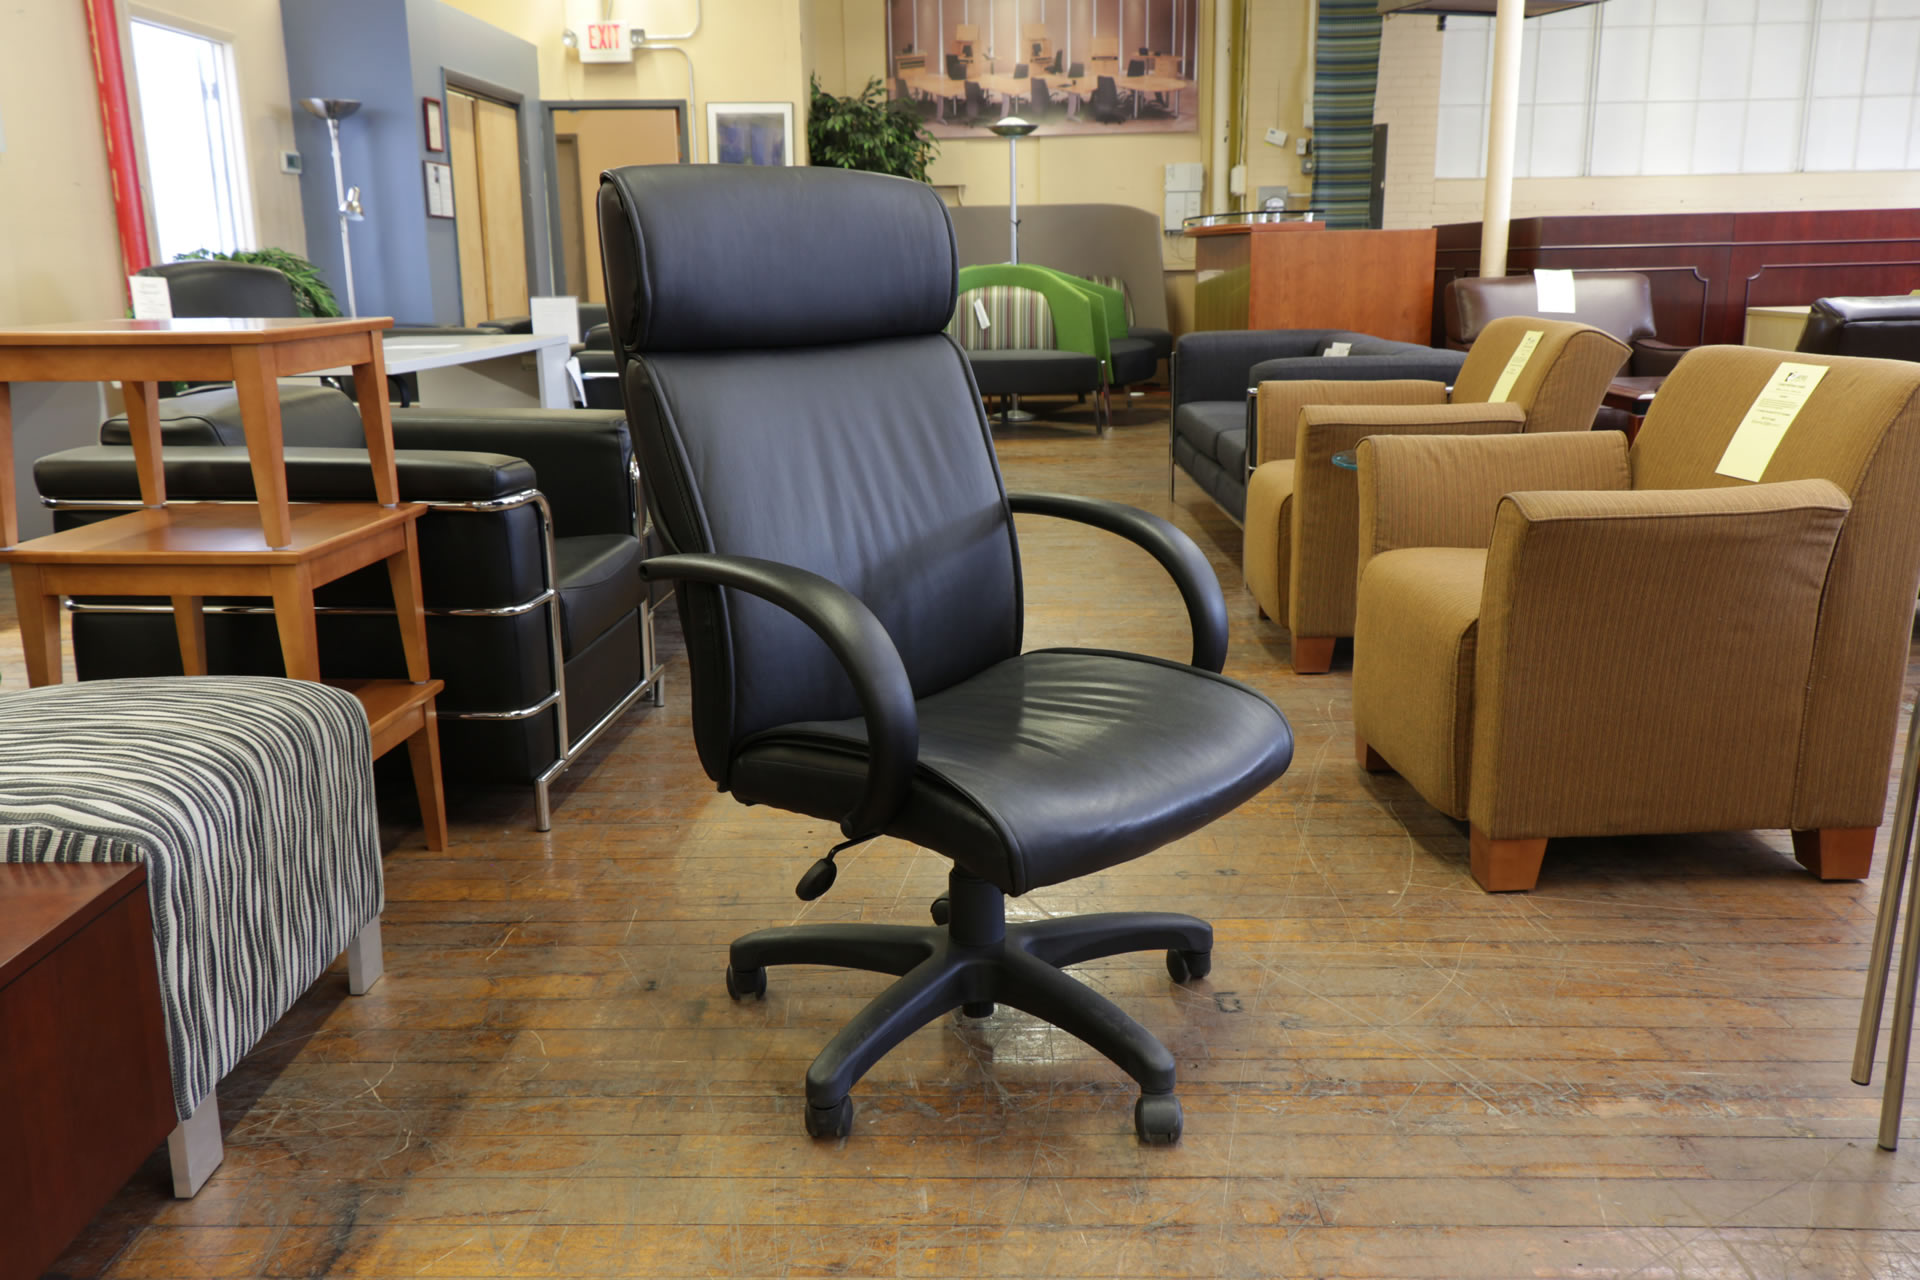 Office Furniture Chairs And Tables new & used office furniture boston - peartree office furniture